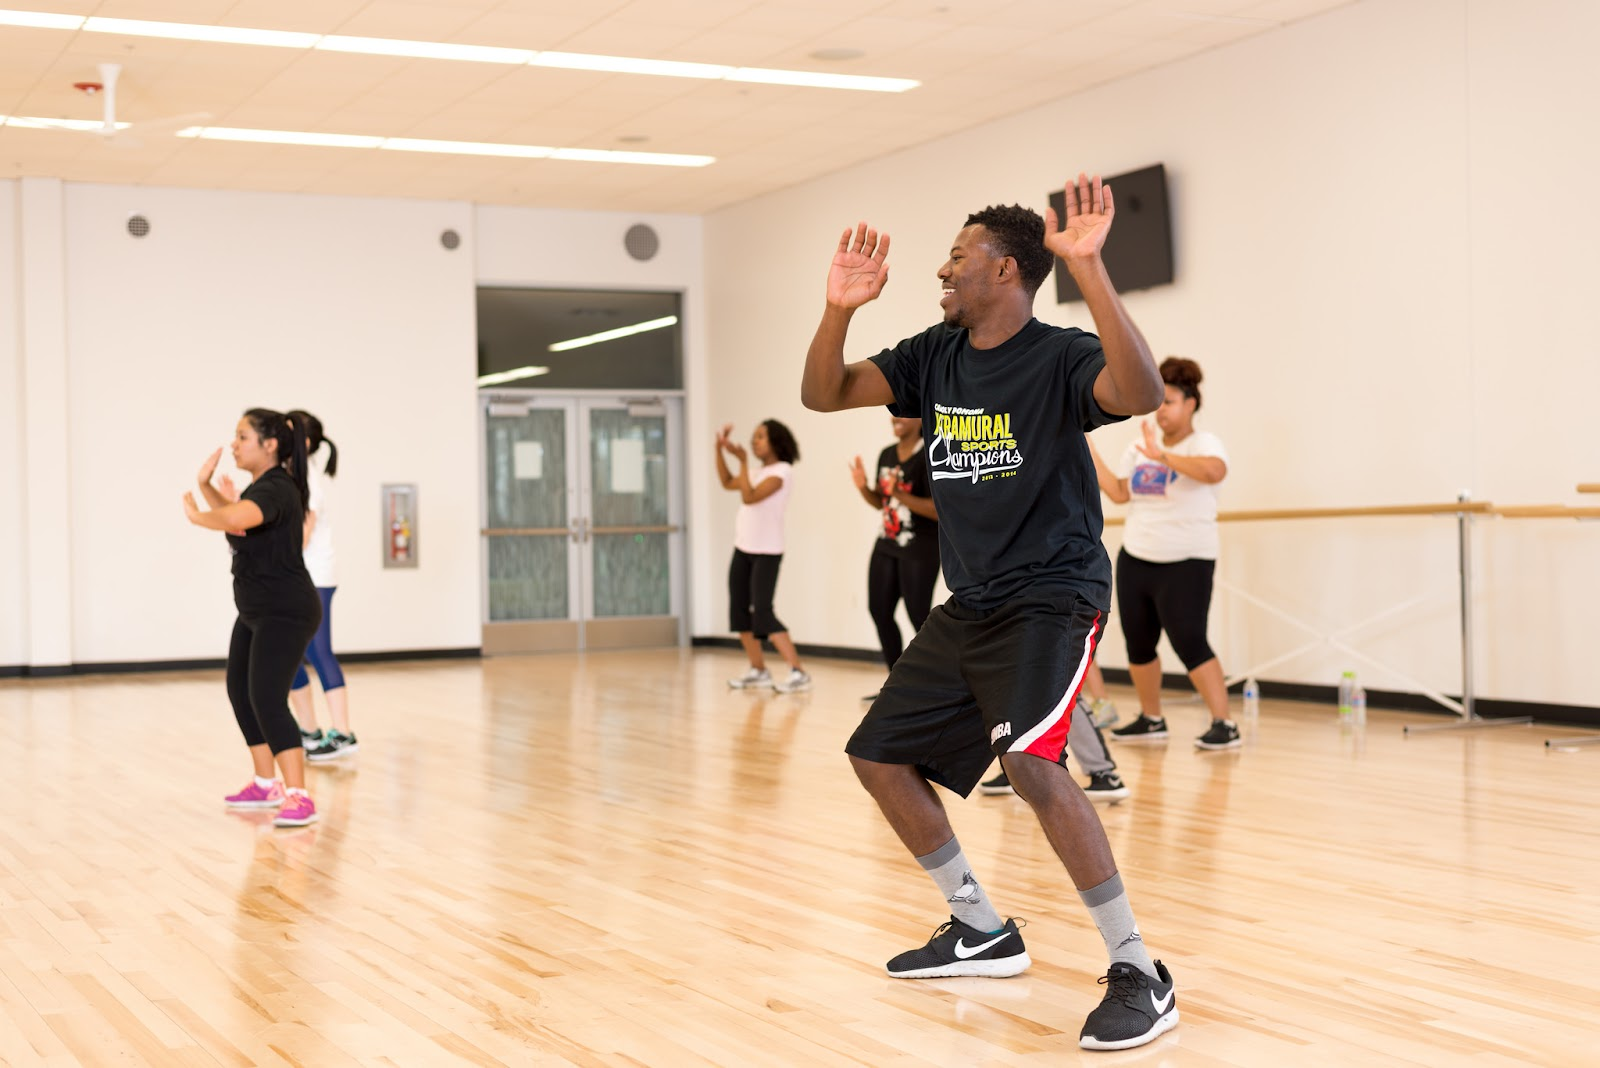 Several students laugh as they enjoy a Zumba class